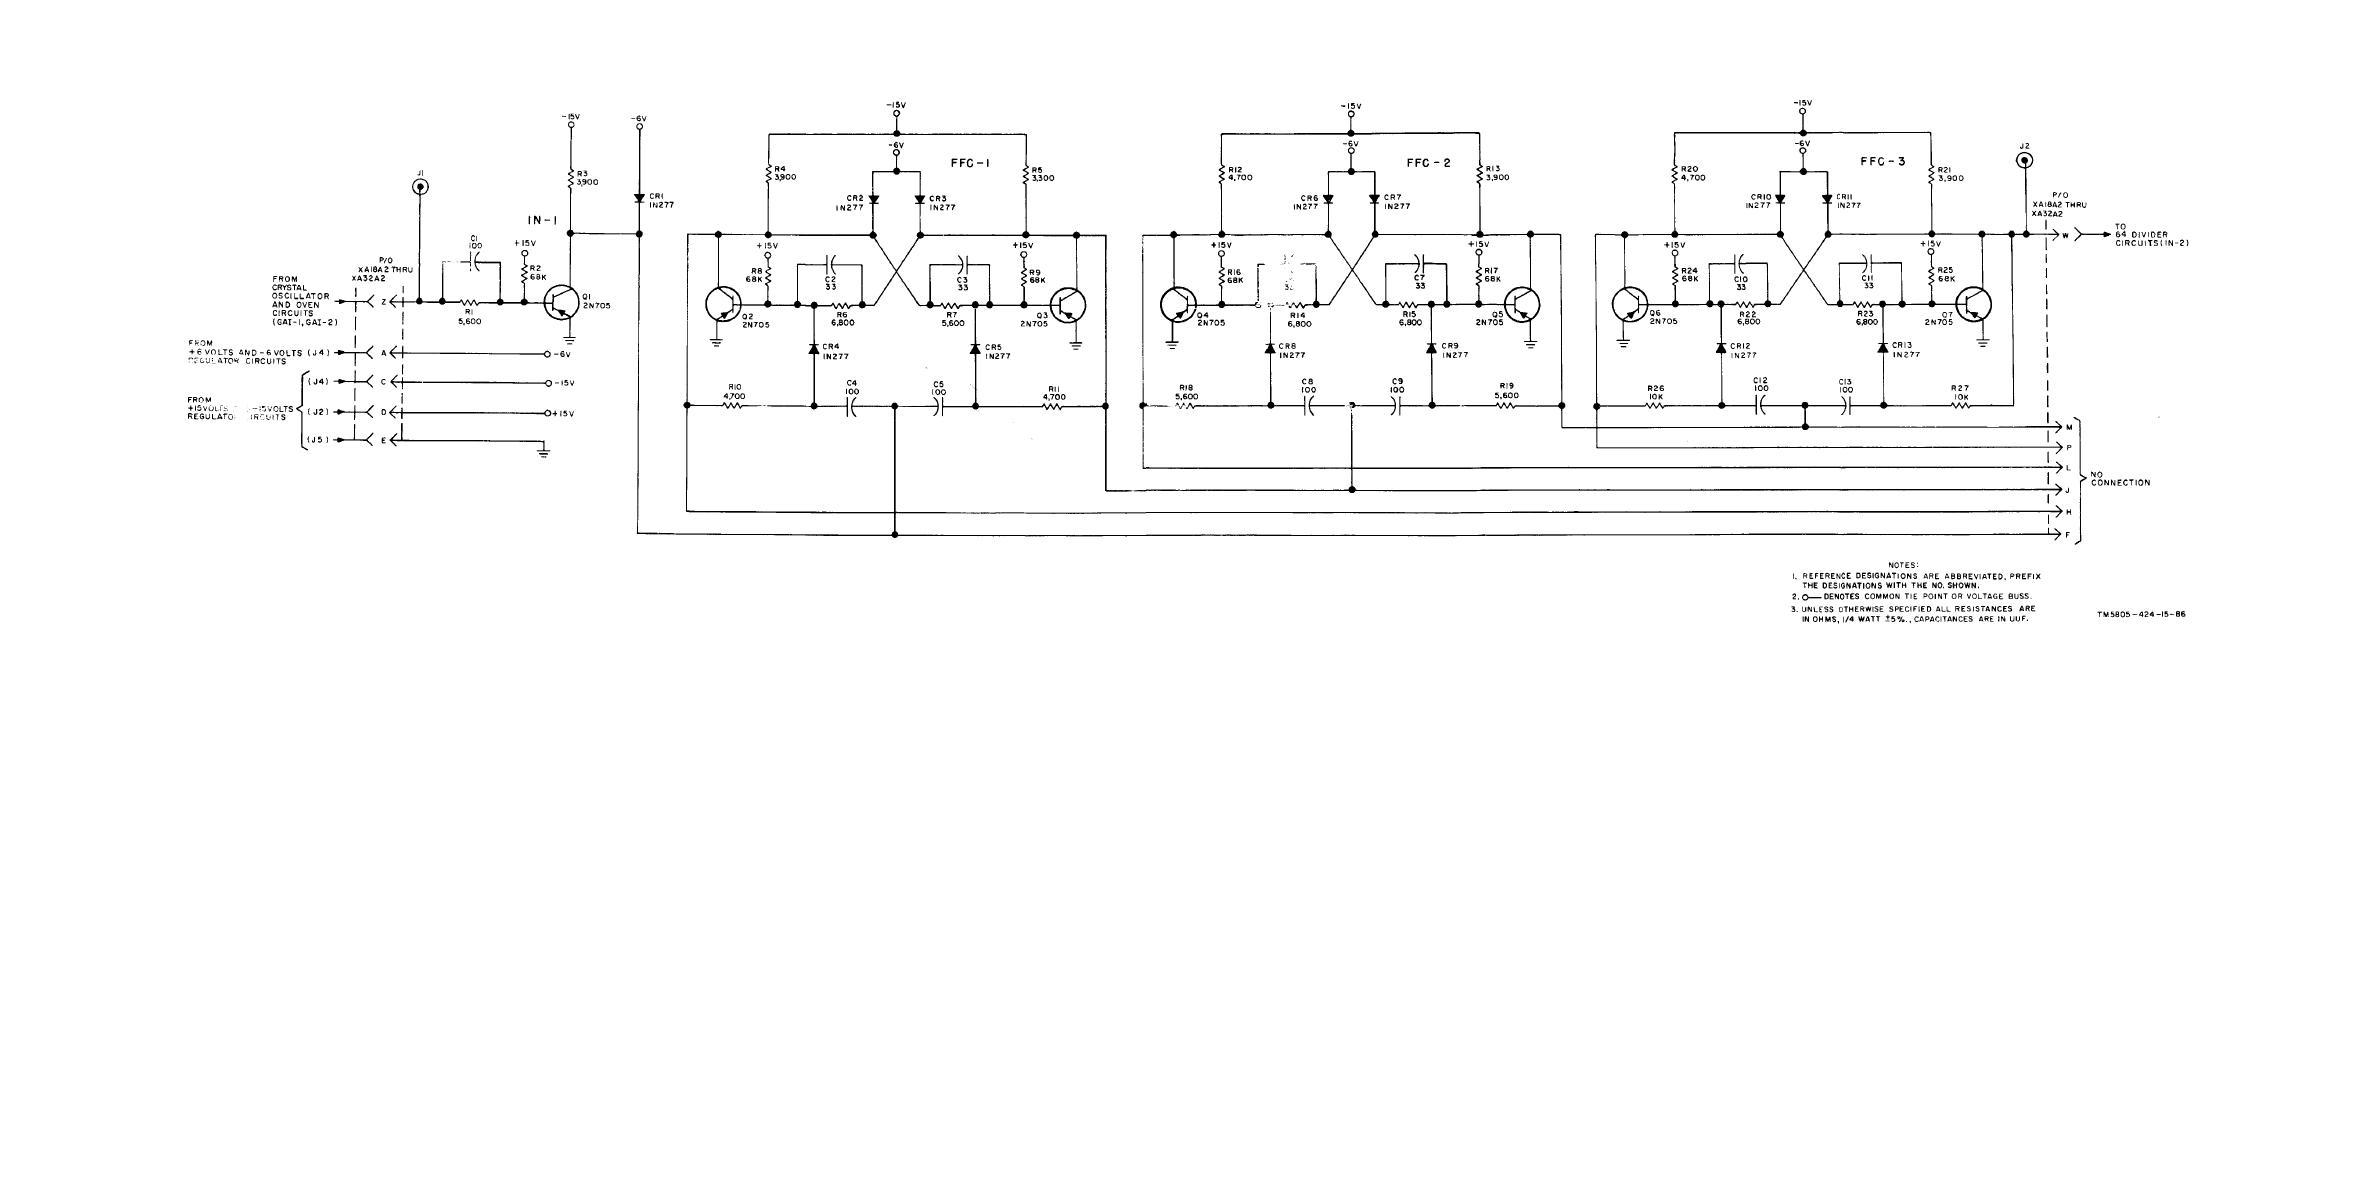 New Circuits Page 14 Voltdividercircuitdiagramgif 3190 Bytes Three Stage Frequency Divider